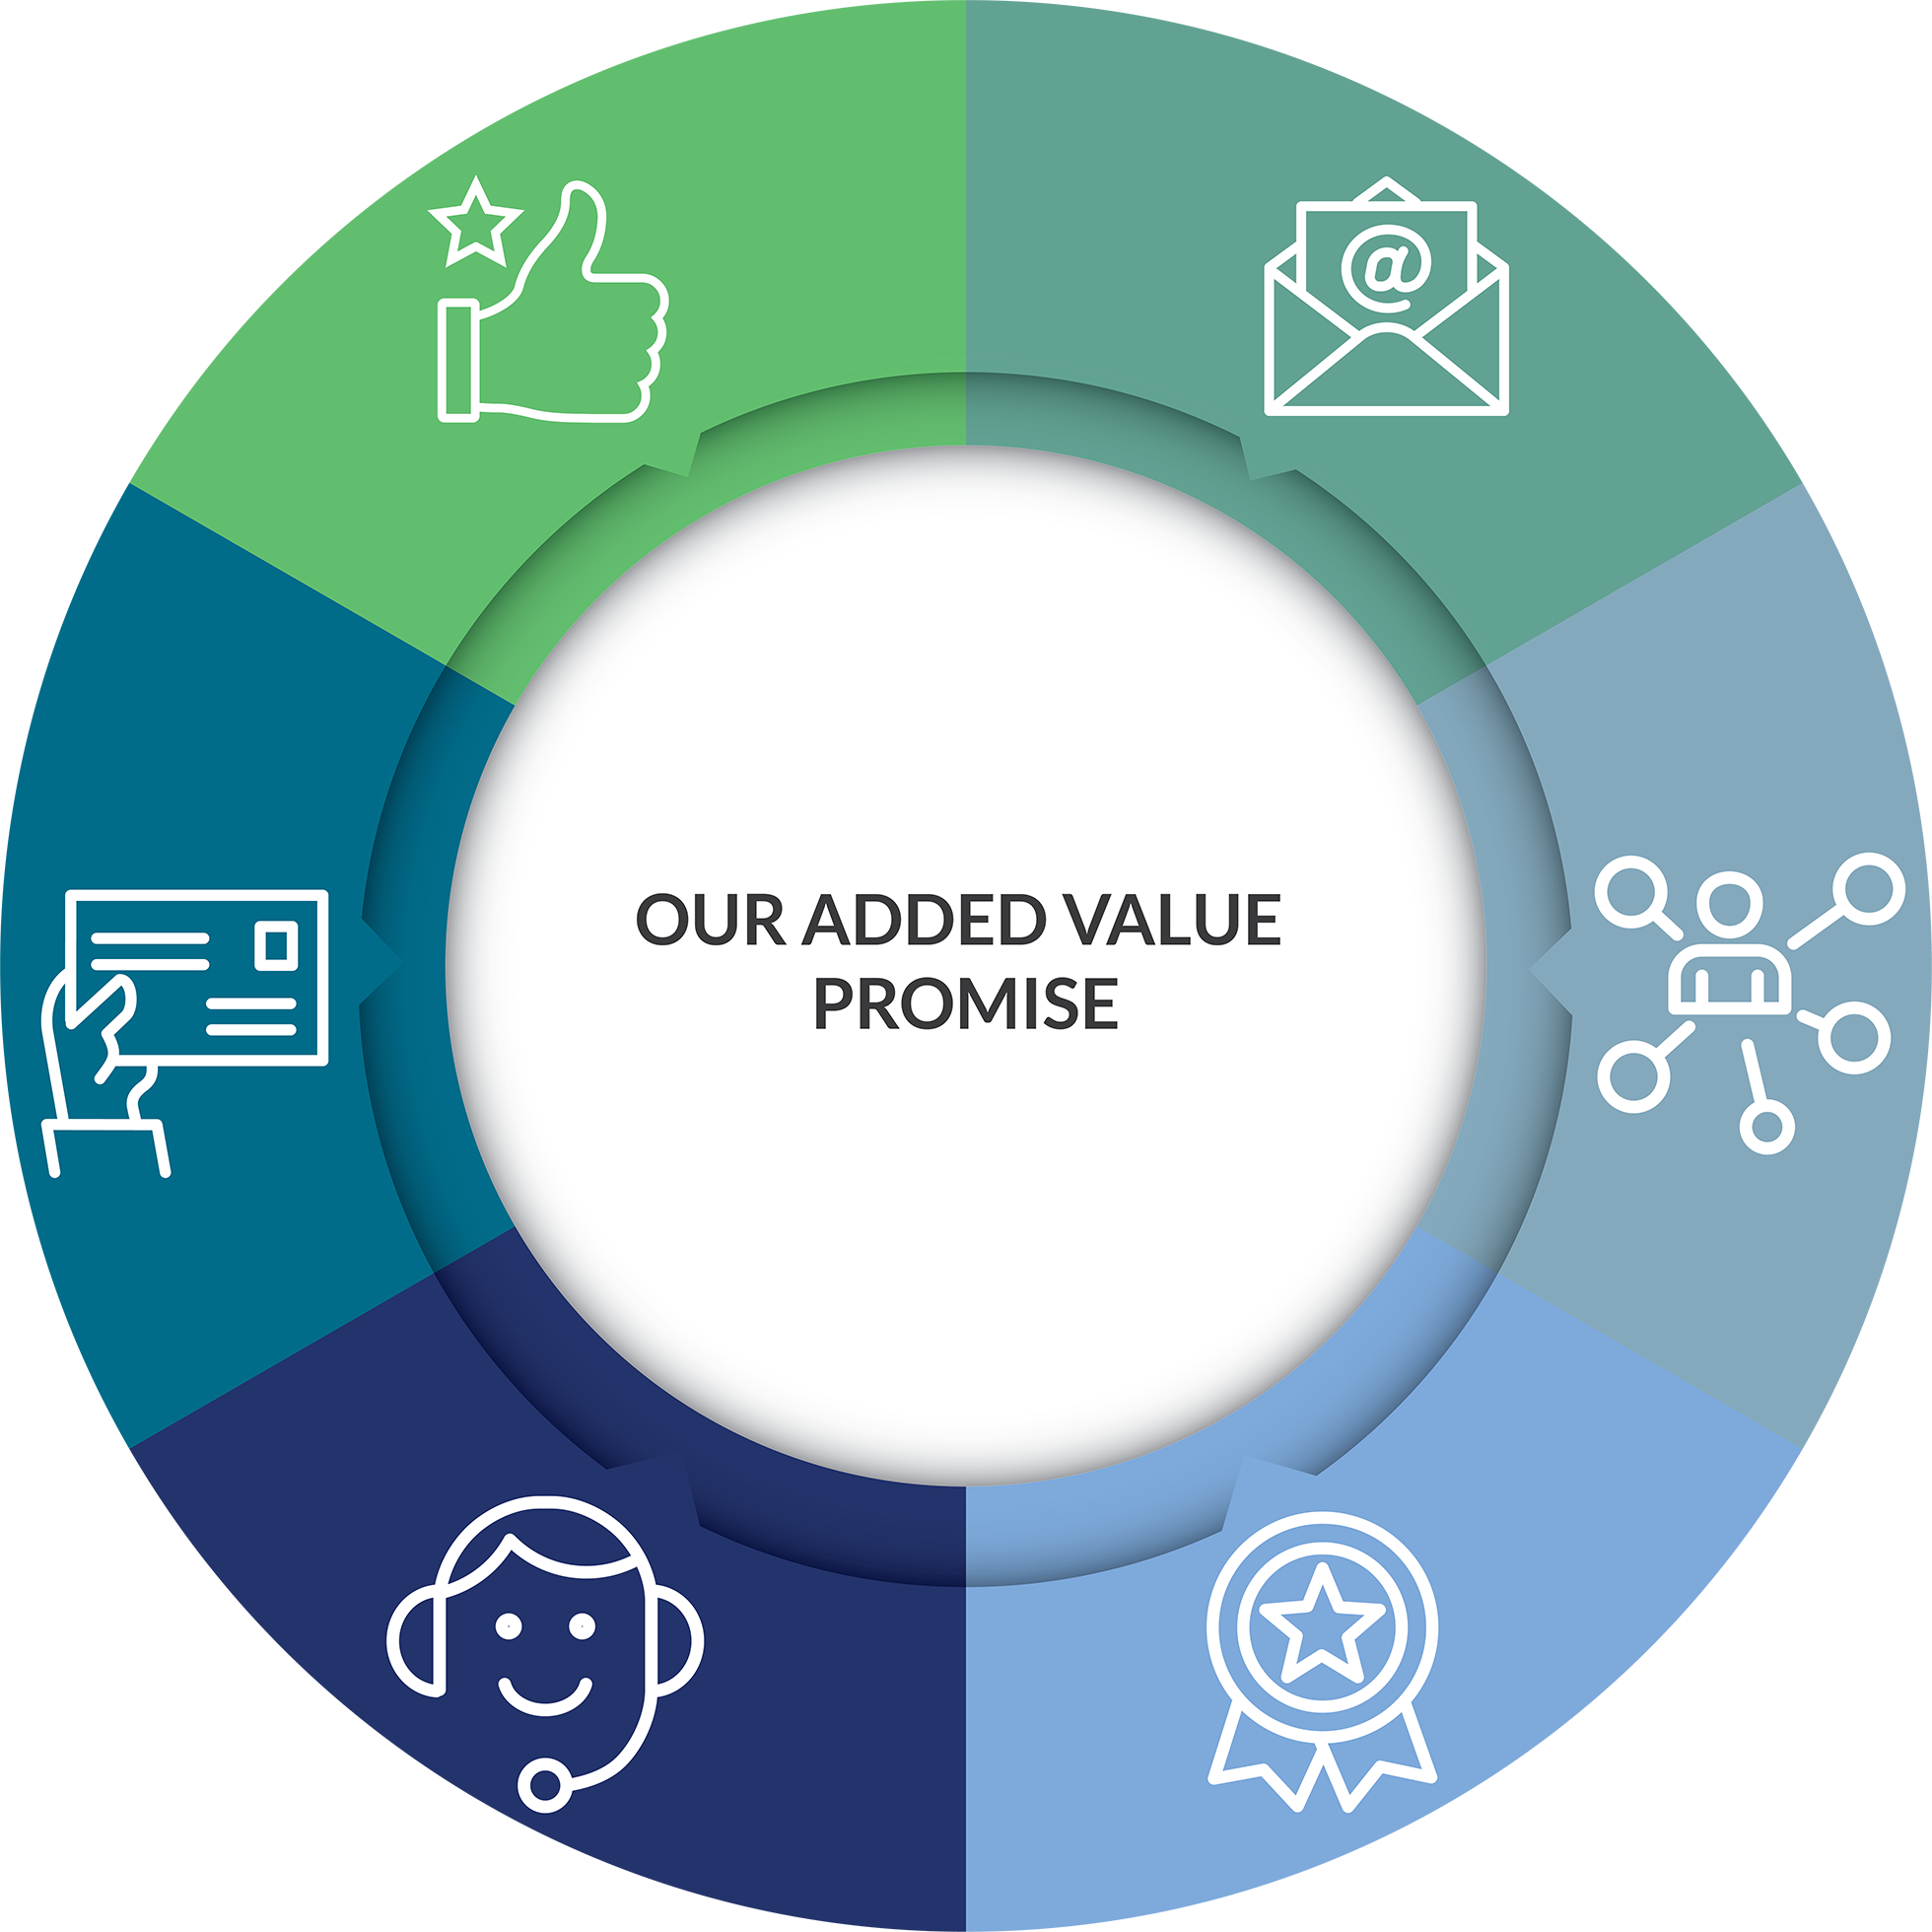 added-value-1